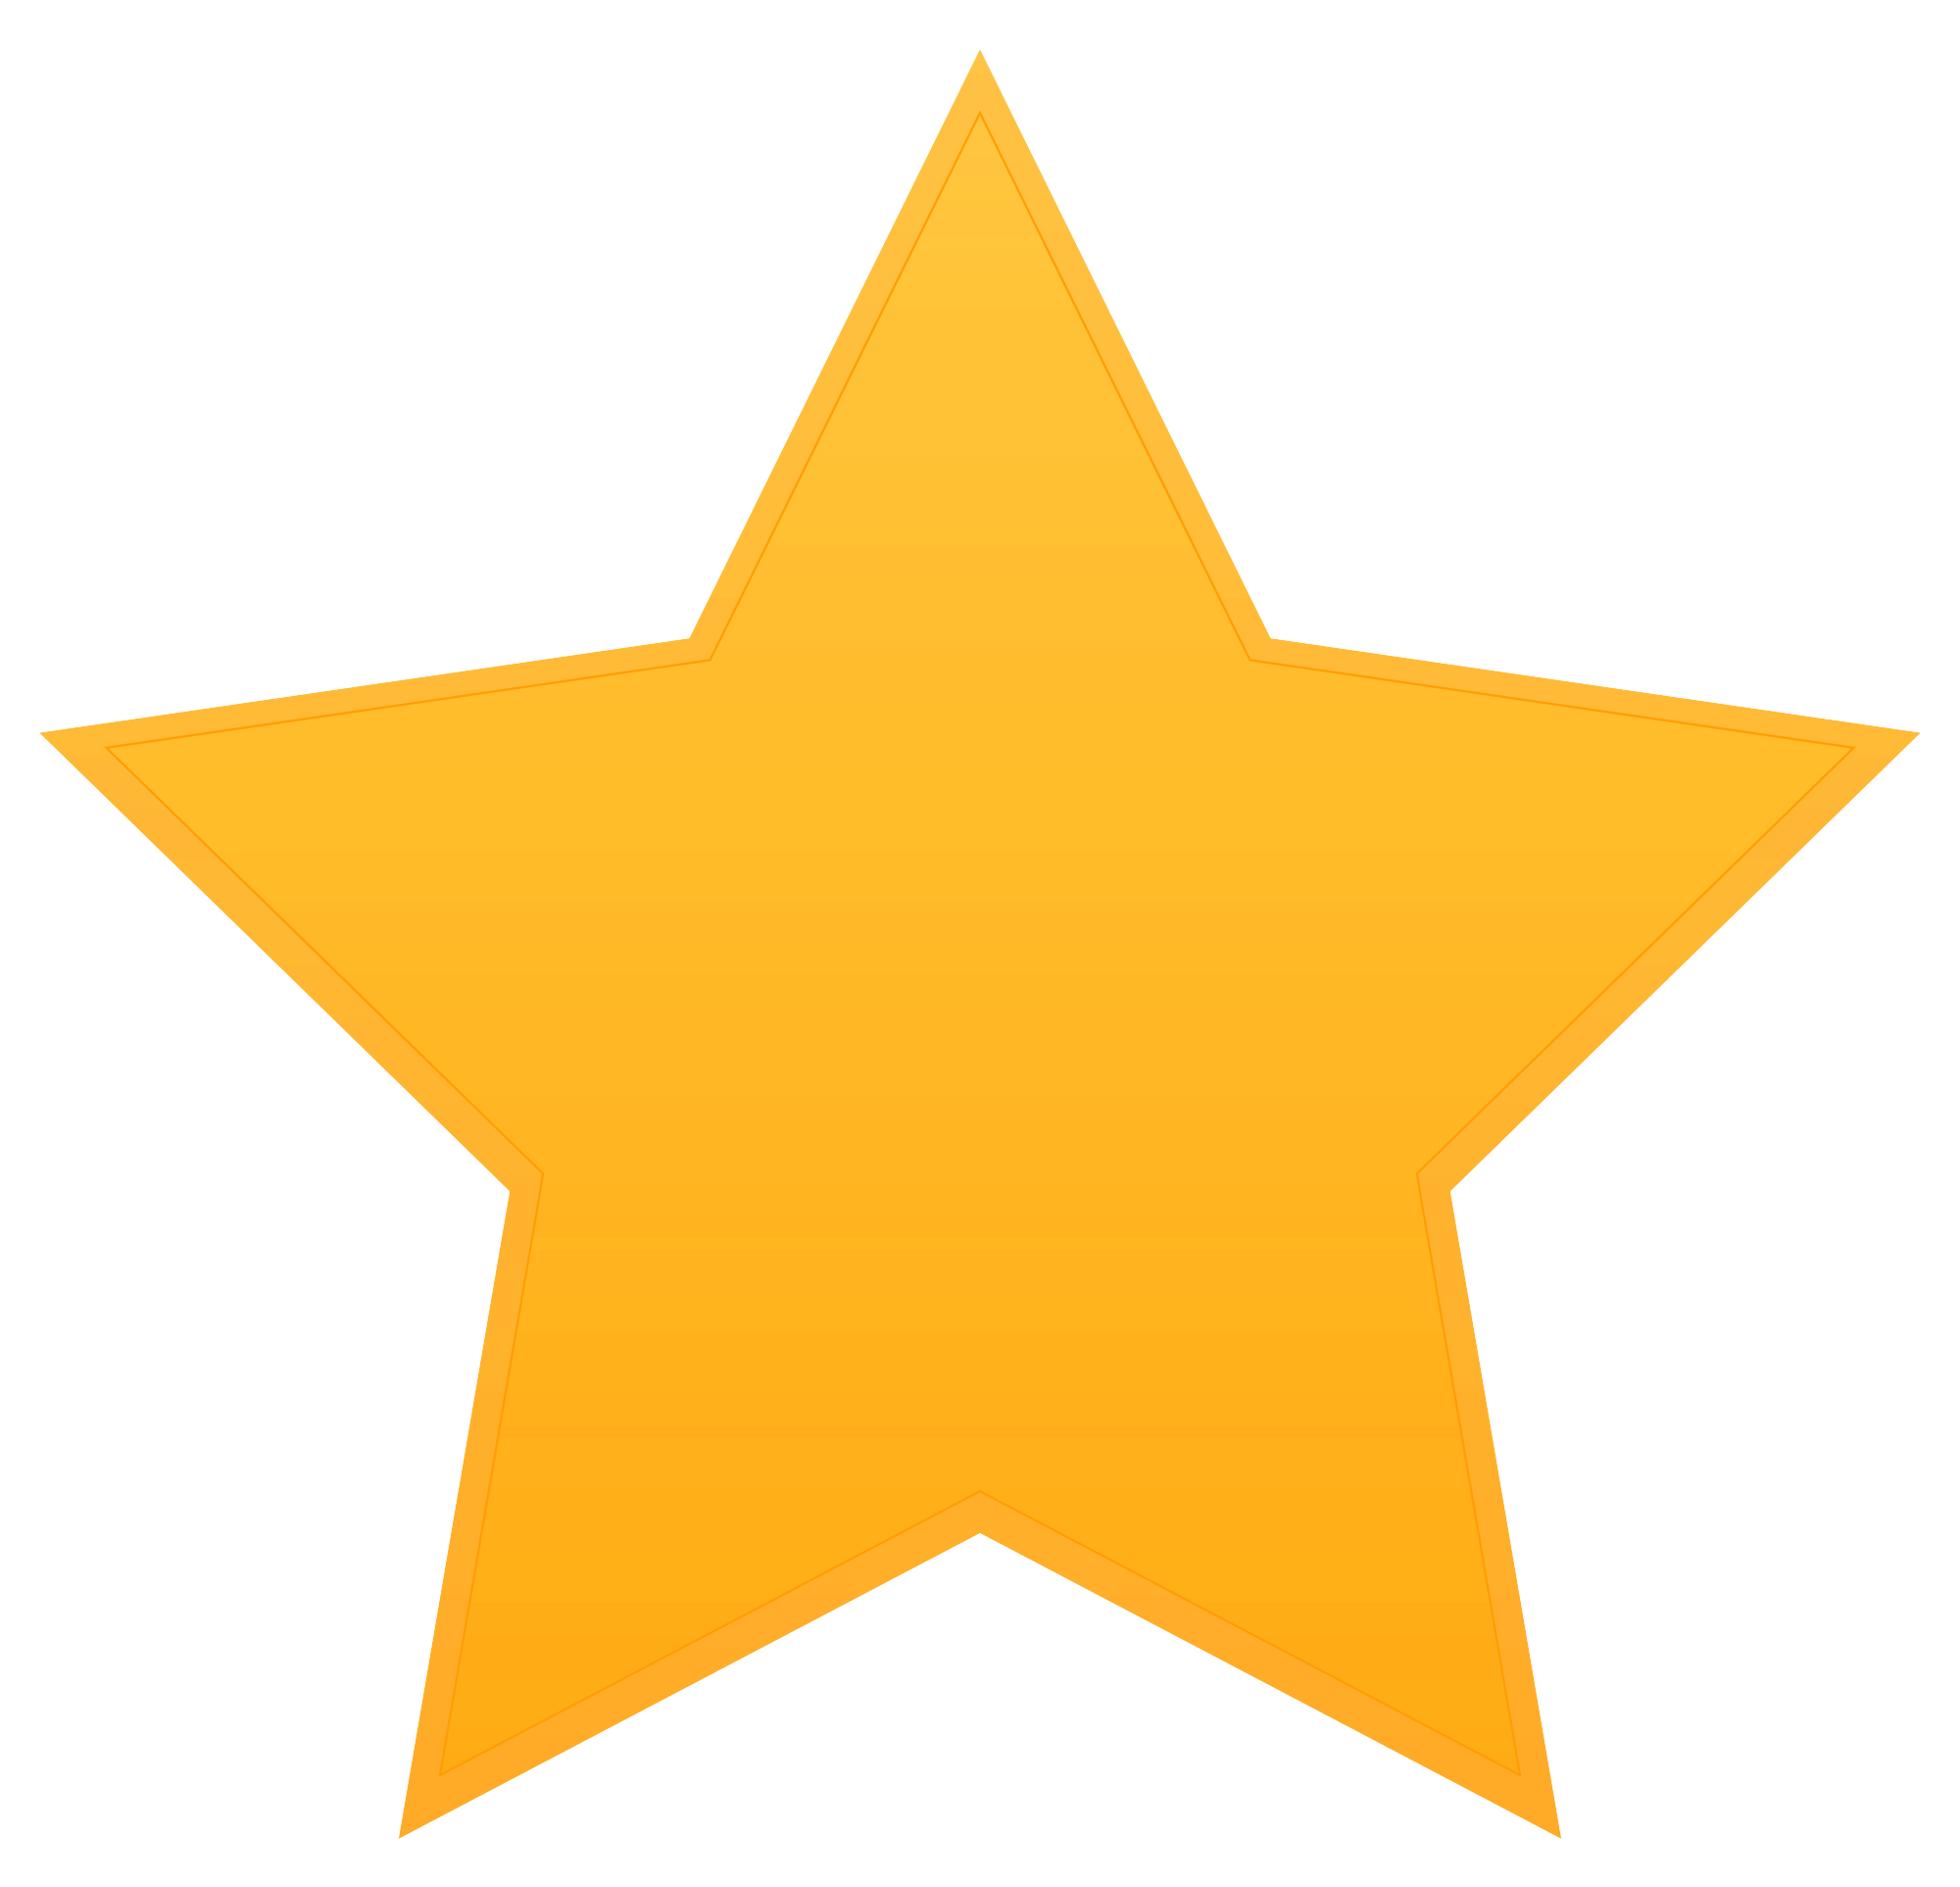 Orange star vector clipart royalty free stock Star Vector PNG Transparent Image - PngPix royalty free stock